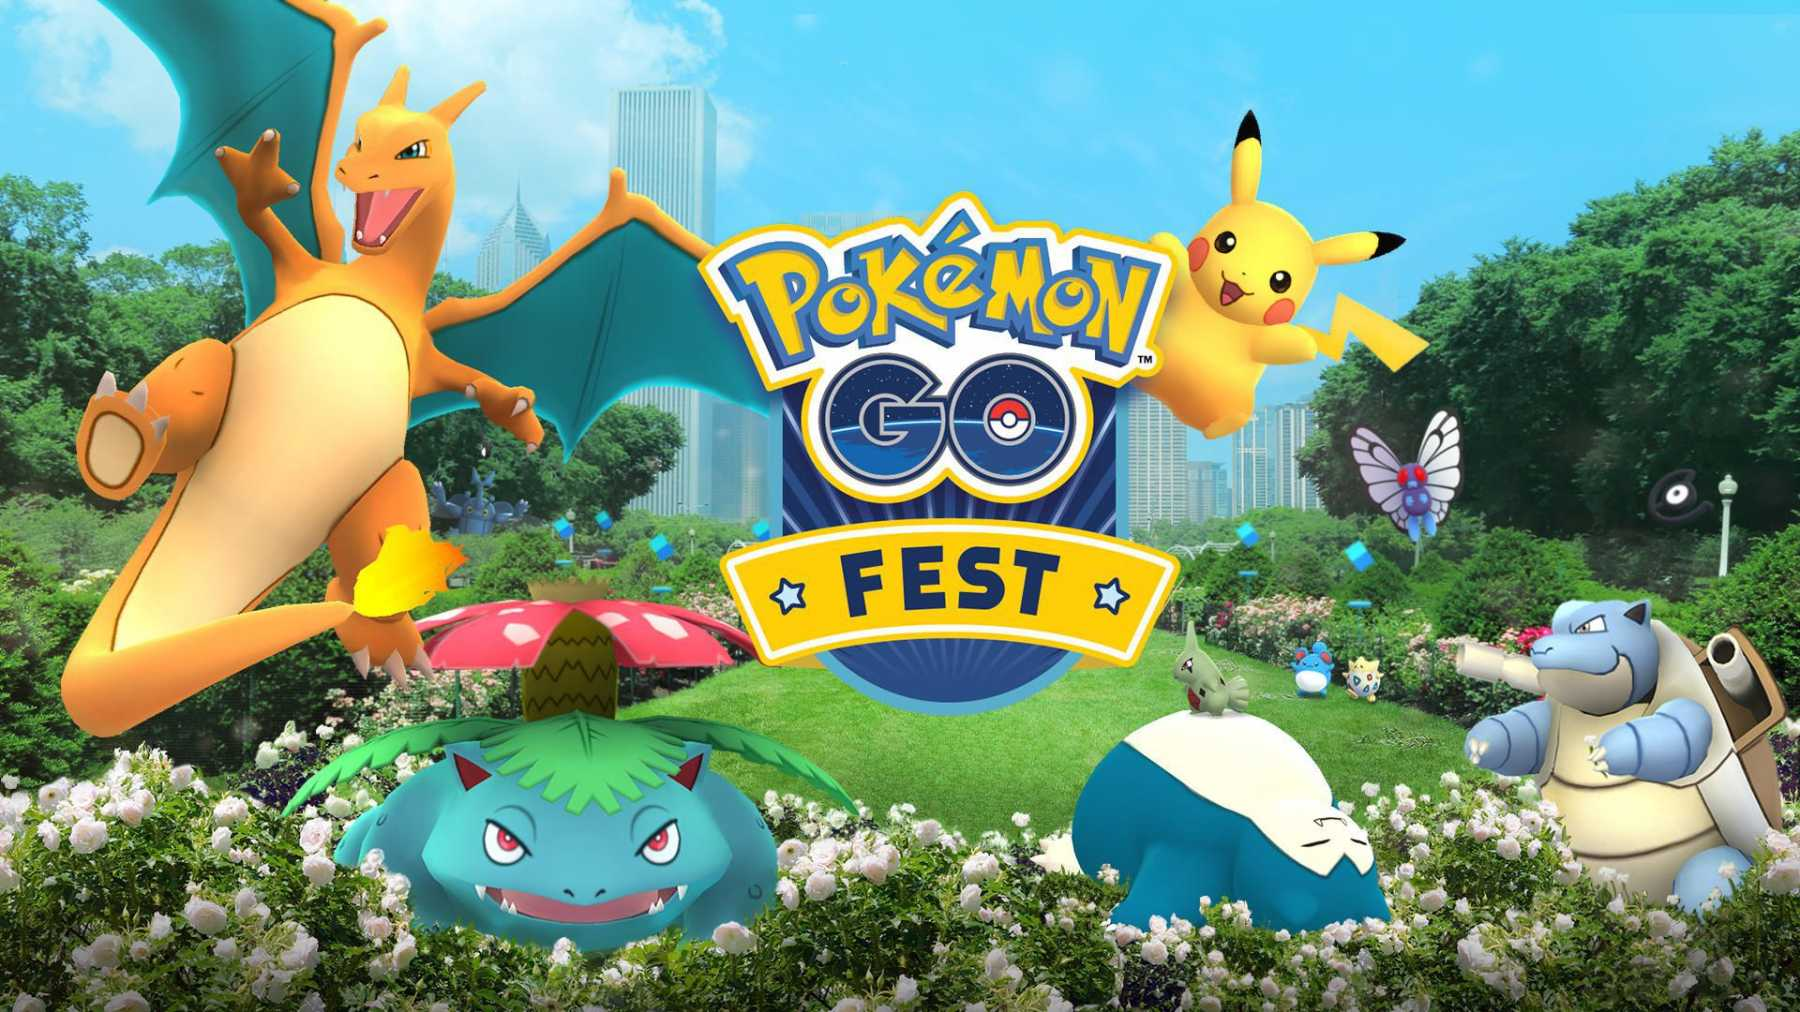 Pokemon GO Fest In Chicago Goes Awry | pokemon